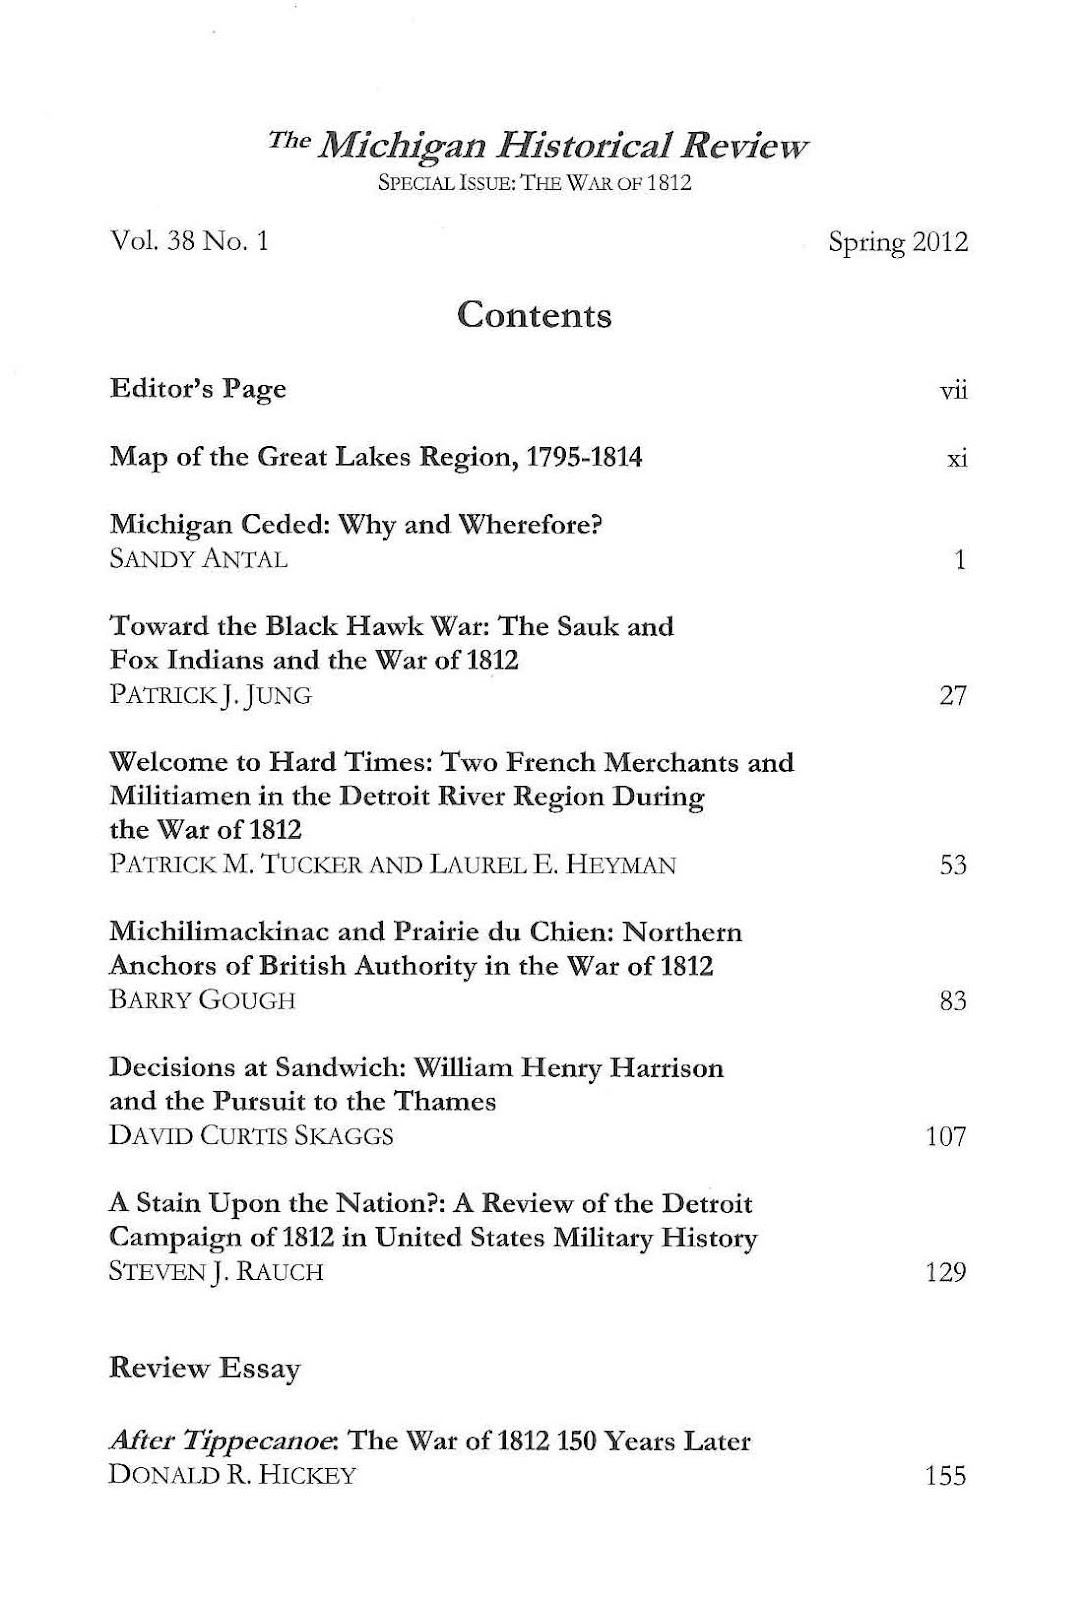 006 The Best American Essays Of Century Mhr20 20tablecontents Essay Imposing Contents Summaries Full